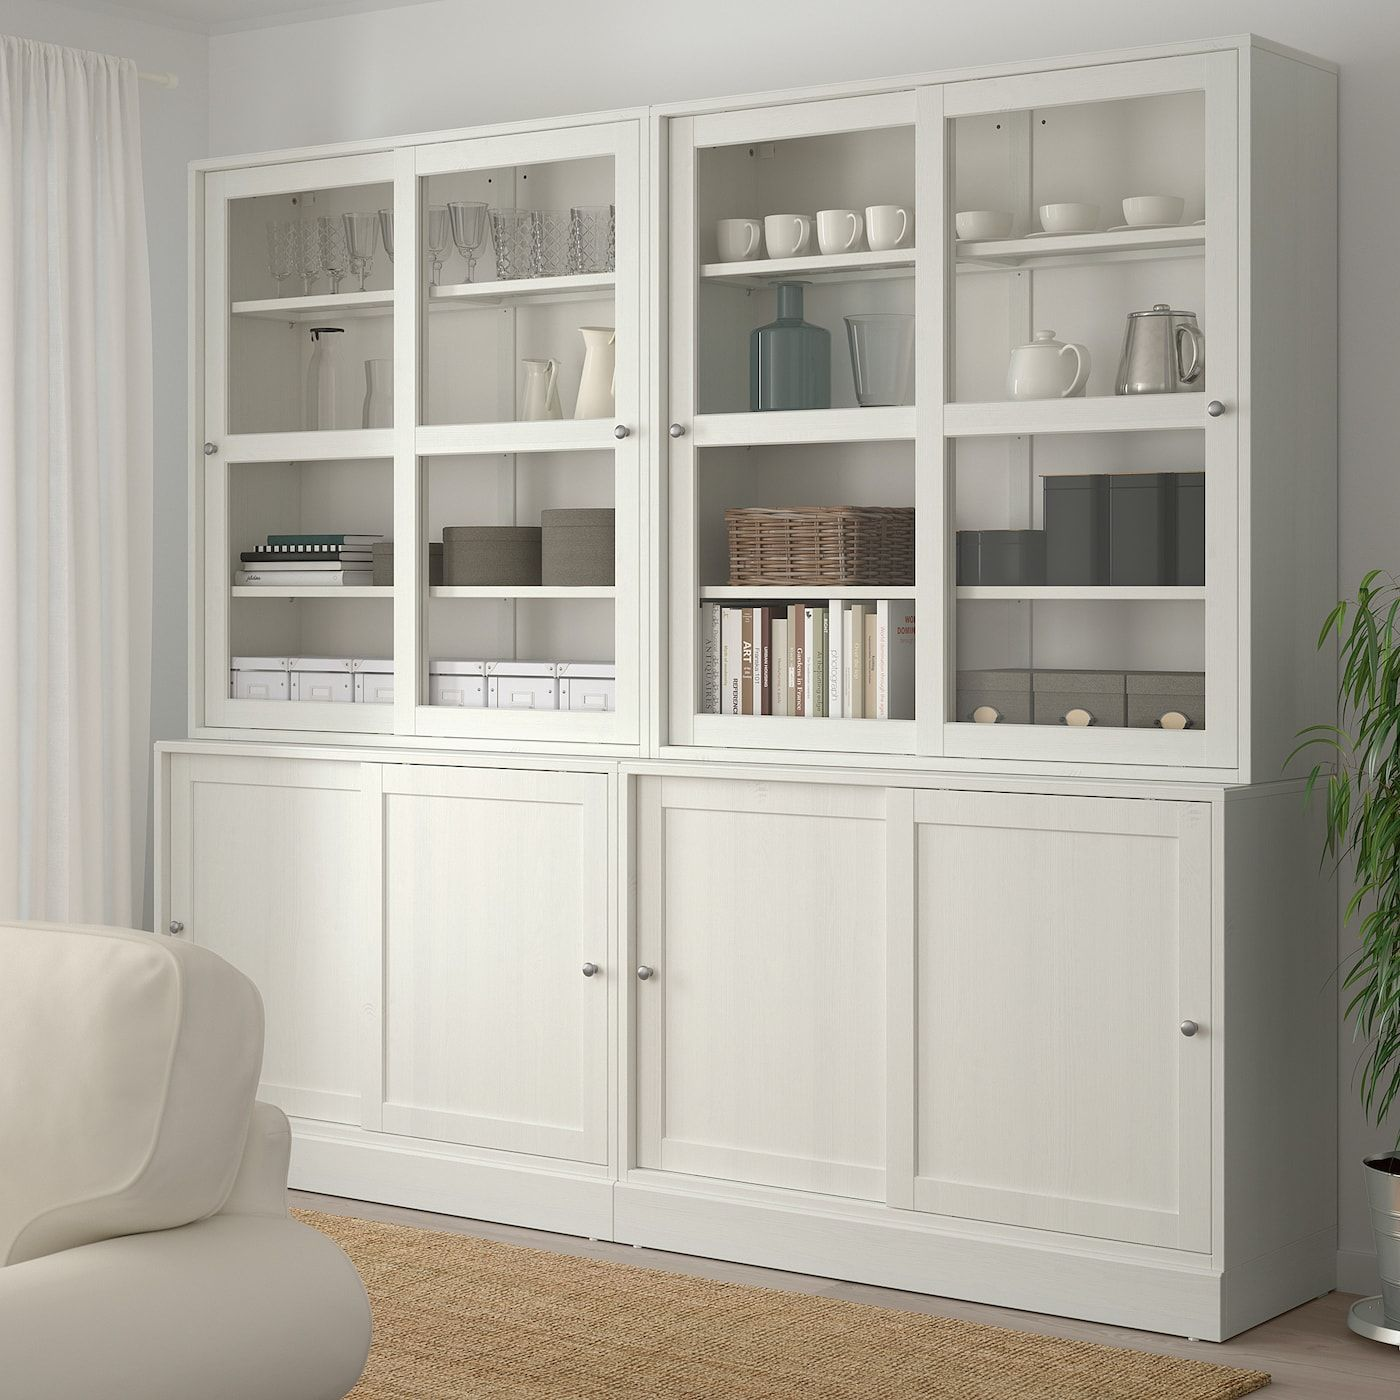 Havsta Storage With Sliding Glass Doors White 95 1 4x18 1 2x83 1